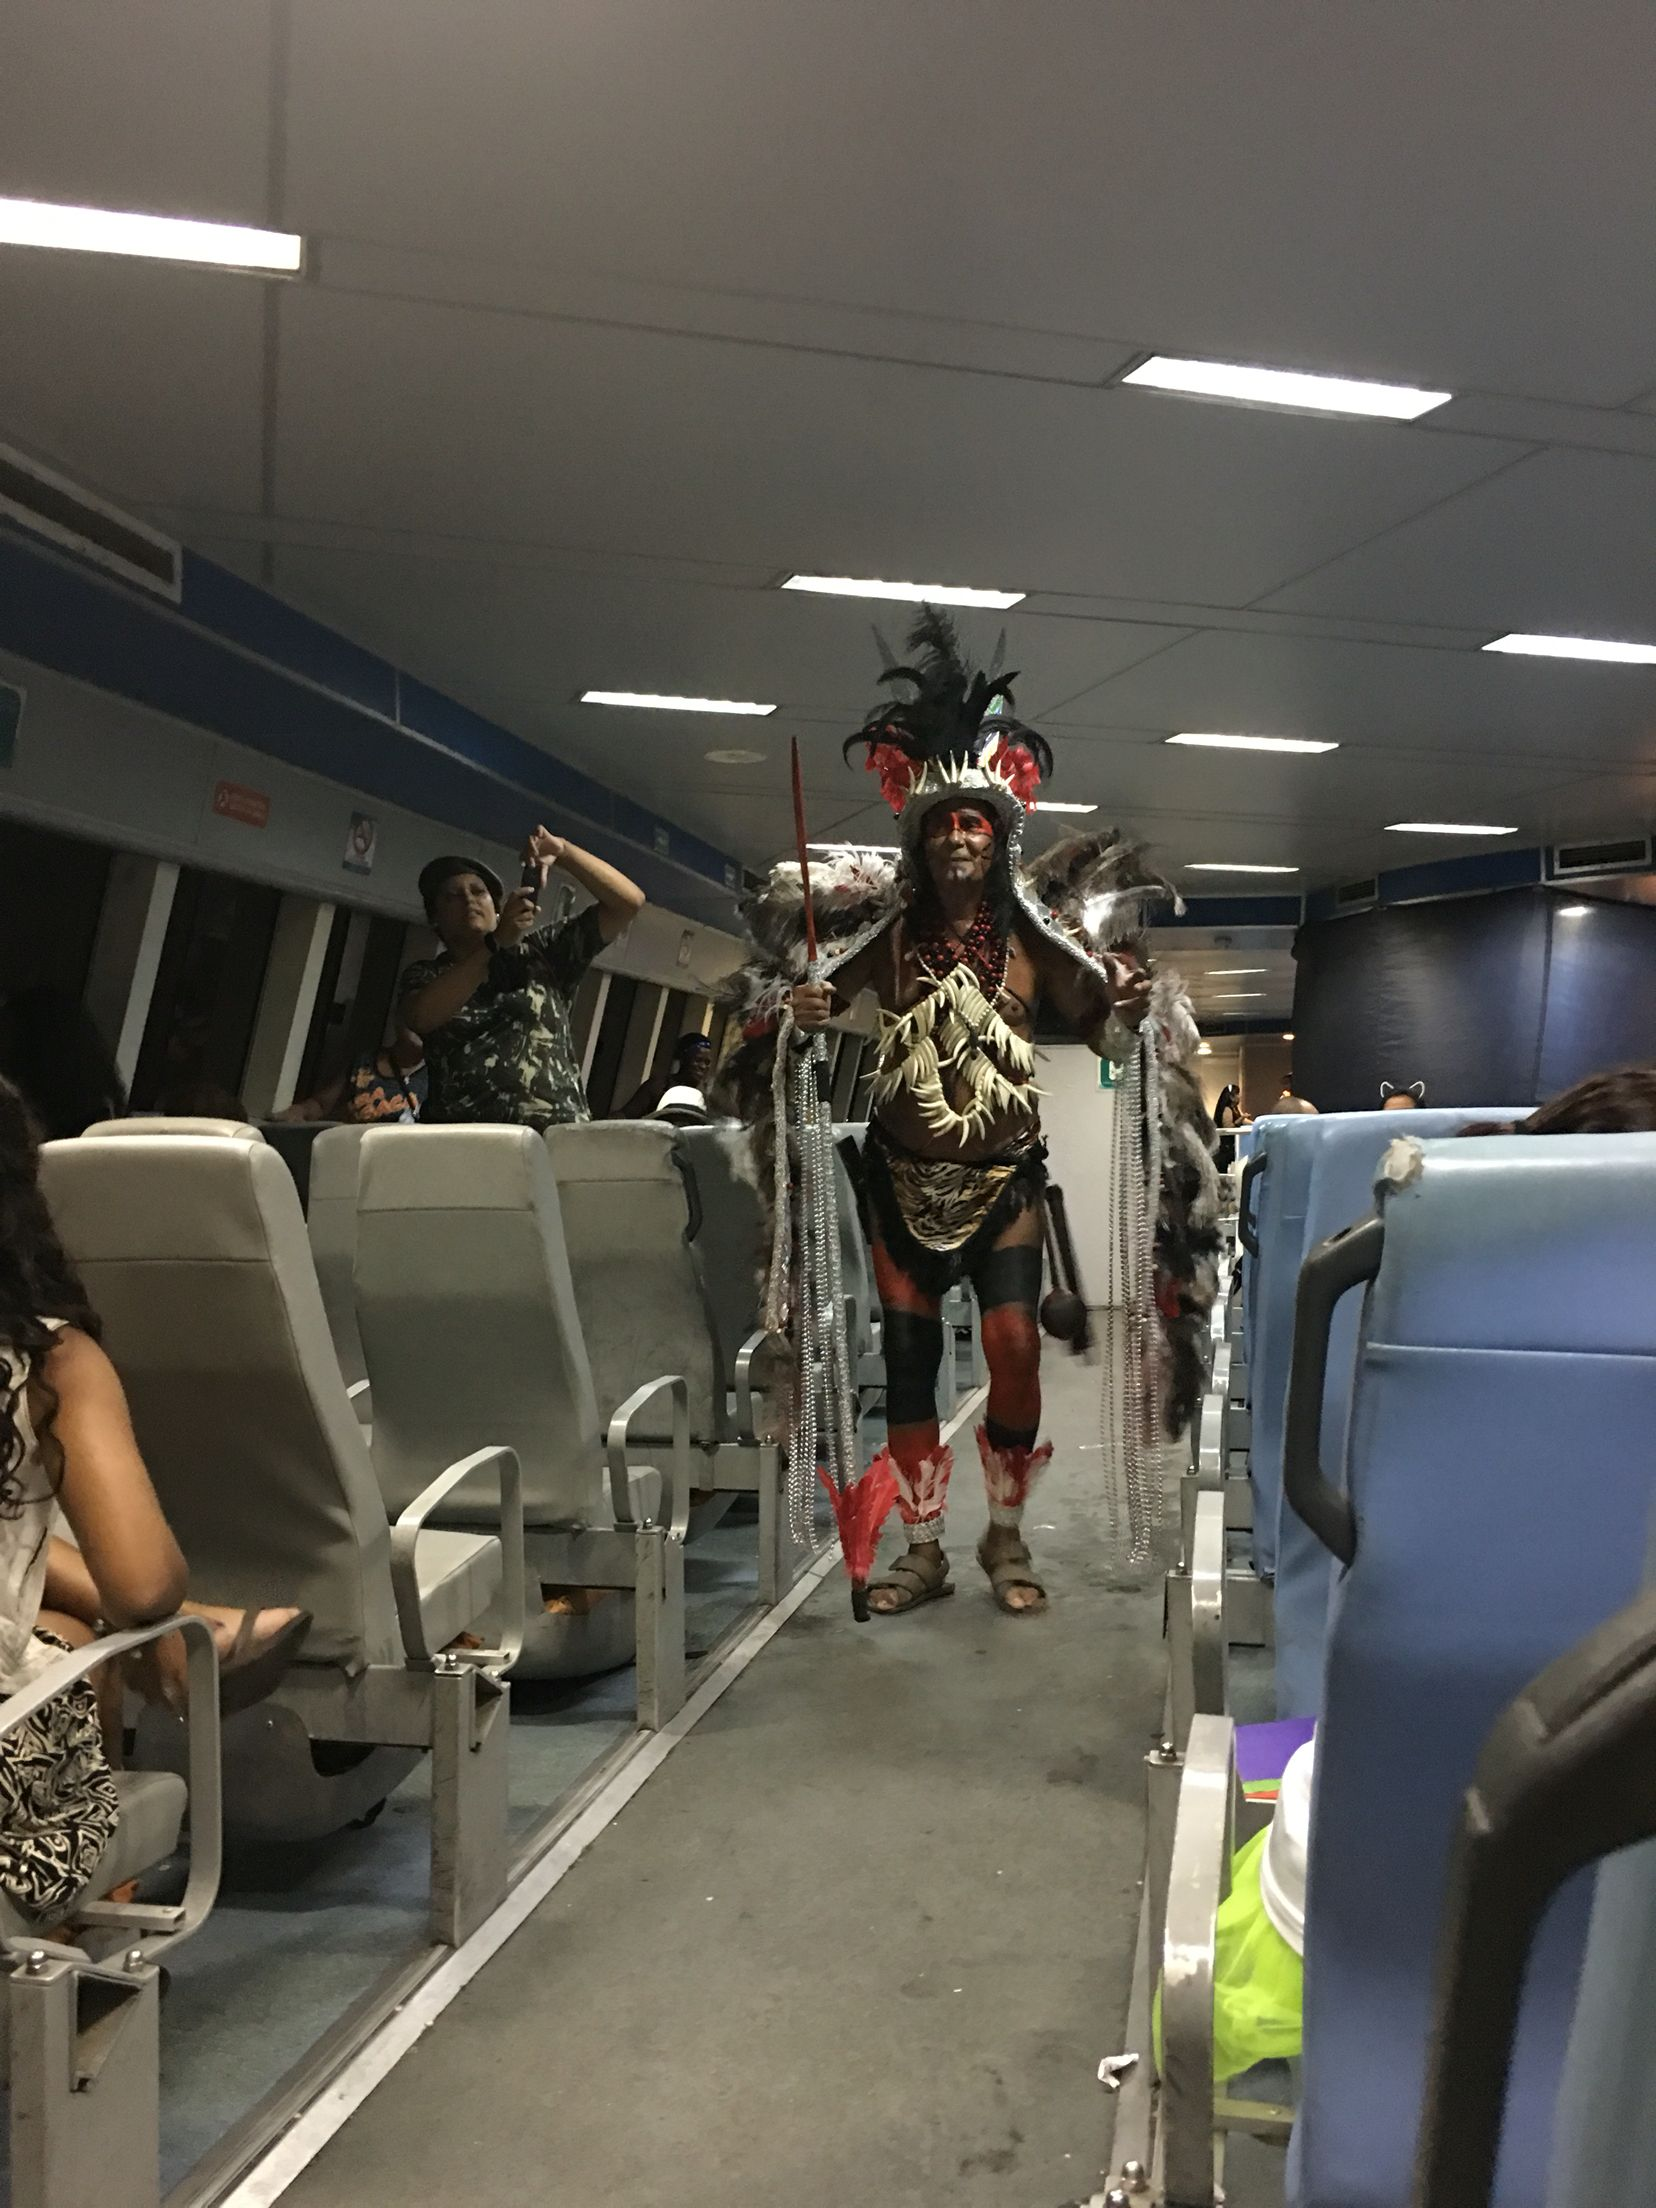 It was quite the surprise, I was on the ferry from Niterói to Rio, when all of a sudden this Indian stared to sing and dance. After a while the entire deck was singing and making beats from anything they could touch.